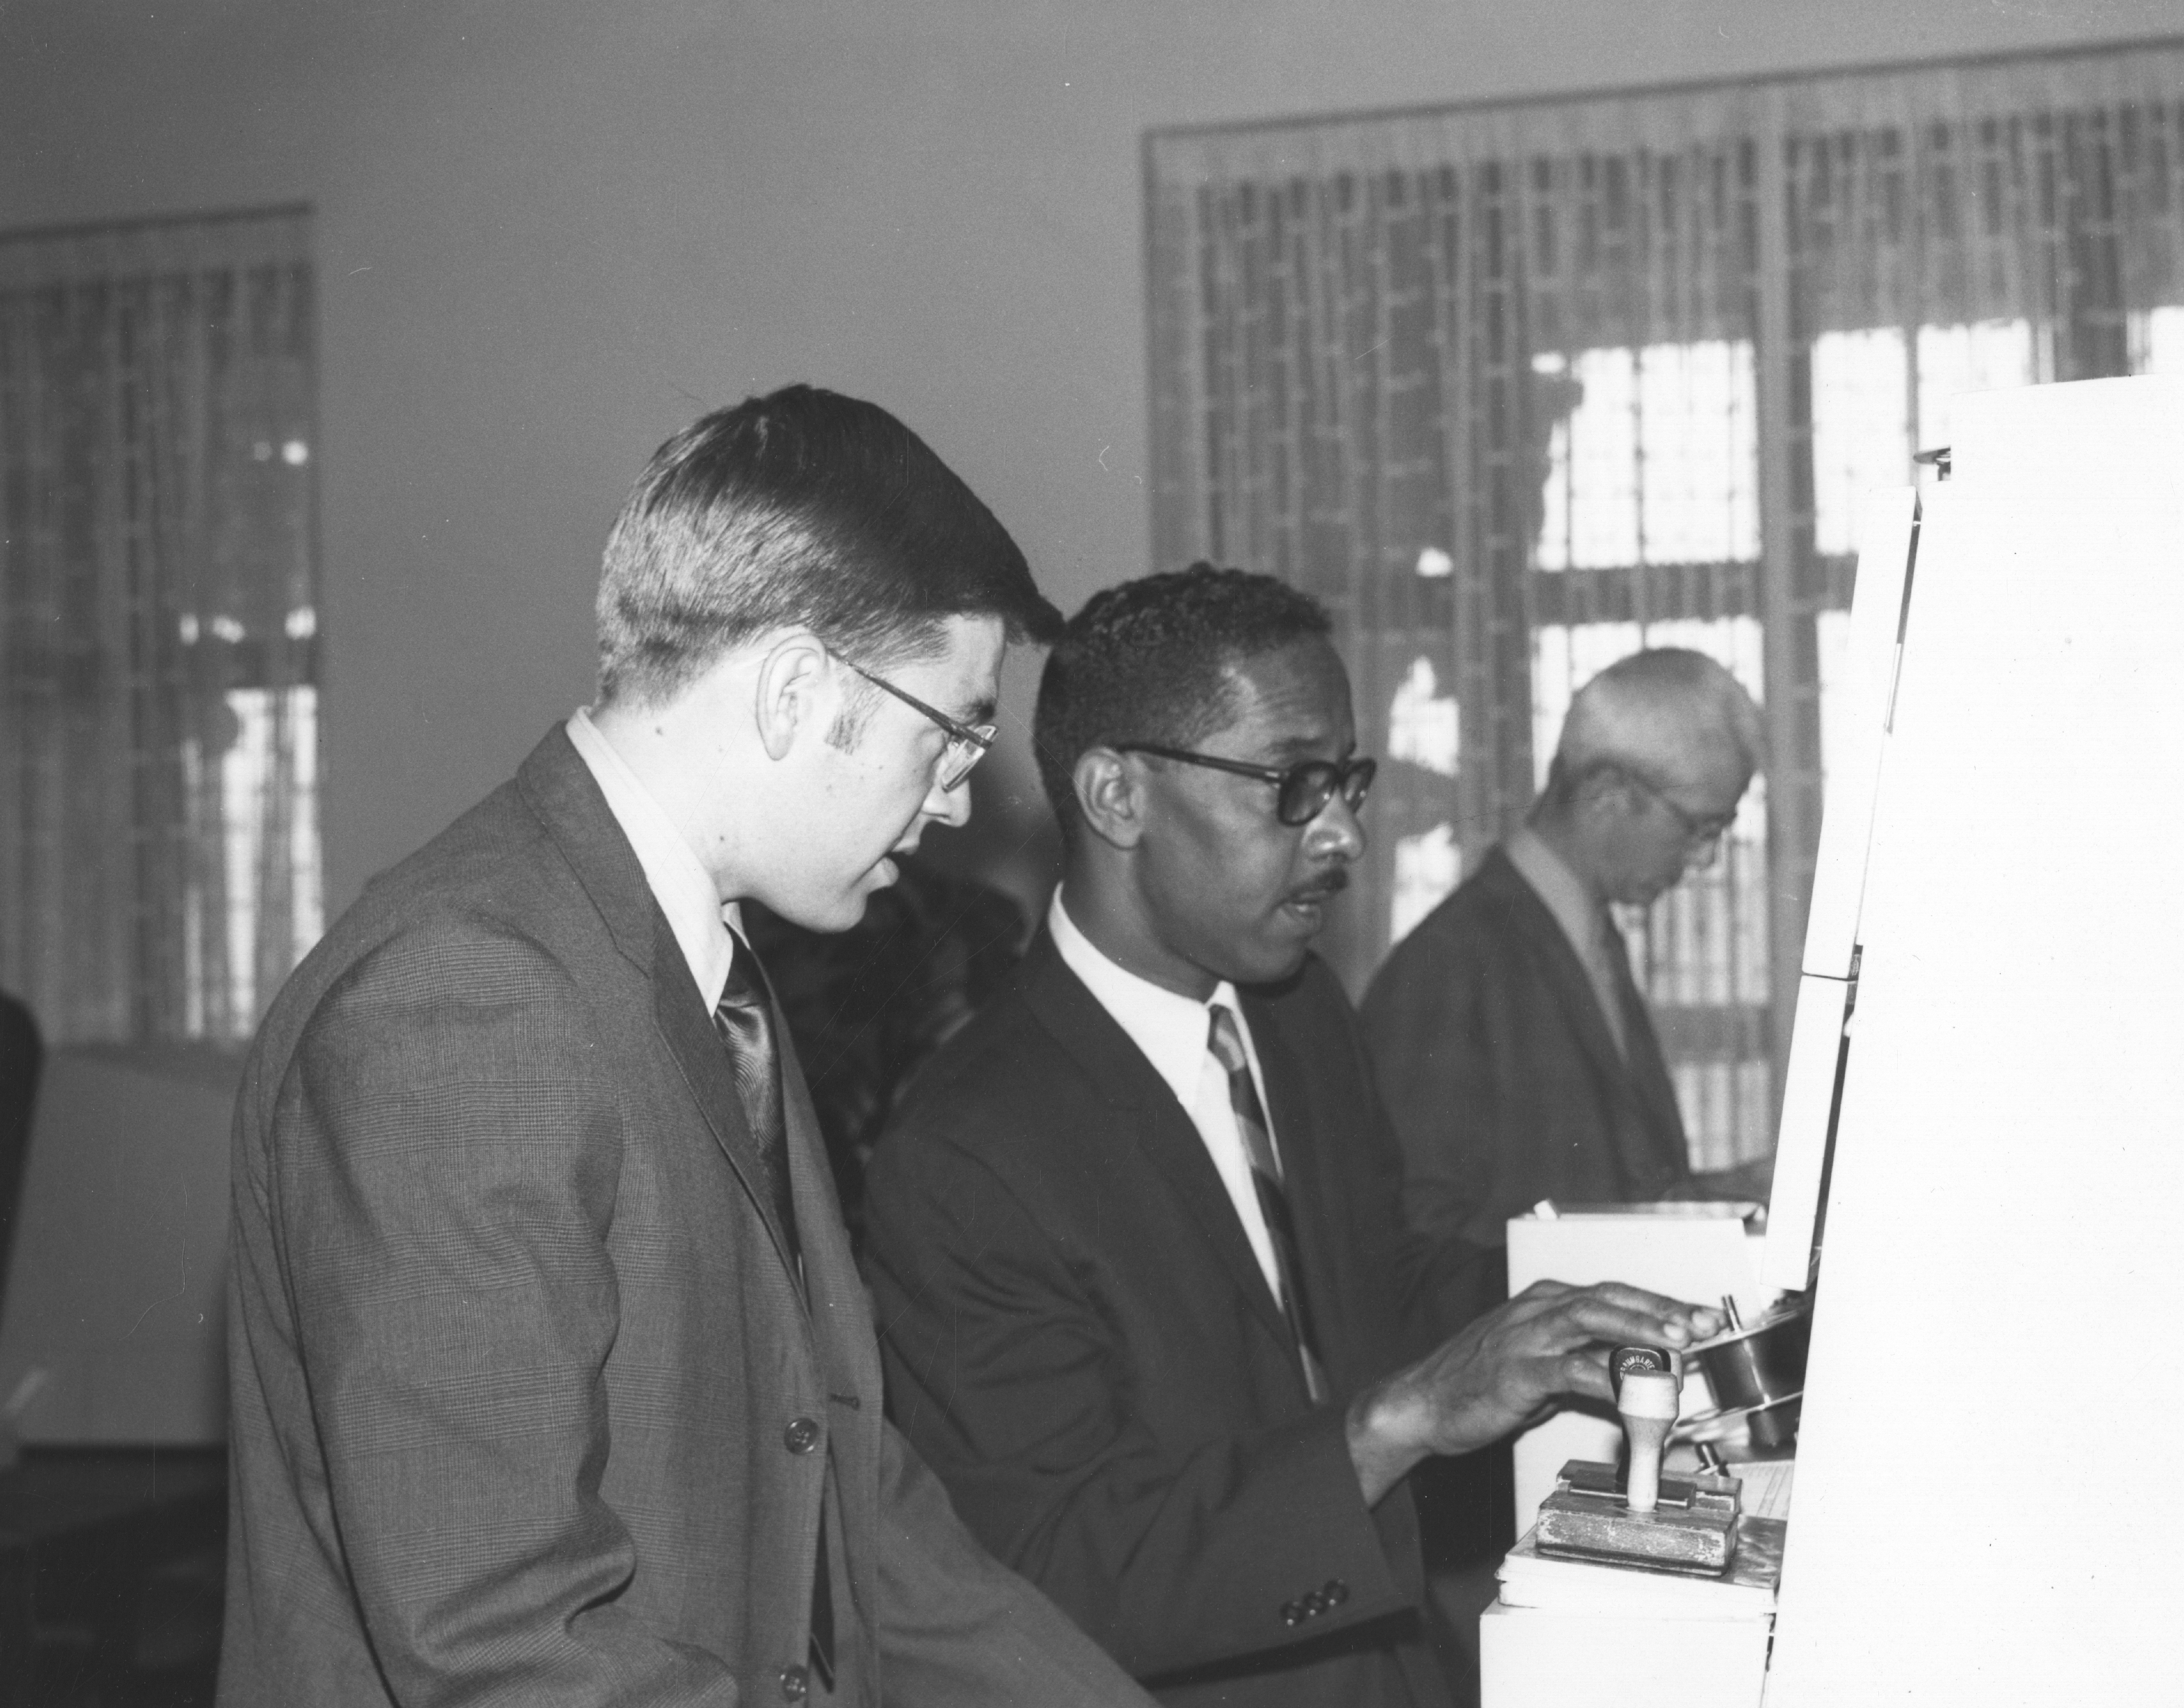 The opening of new Microfilm Reading Room at the National Archives, June 24, 1971. (National Archives Identifier23856415)